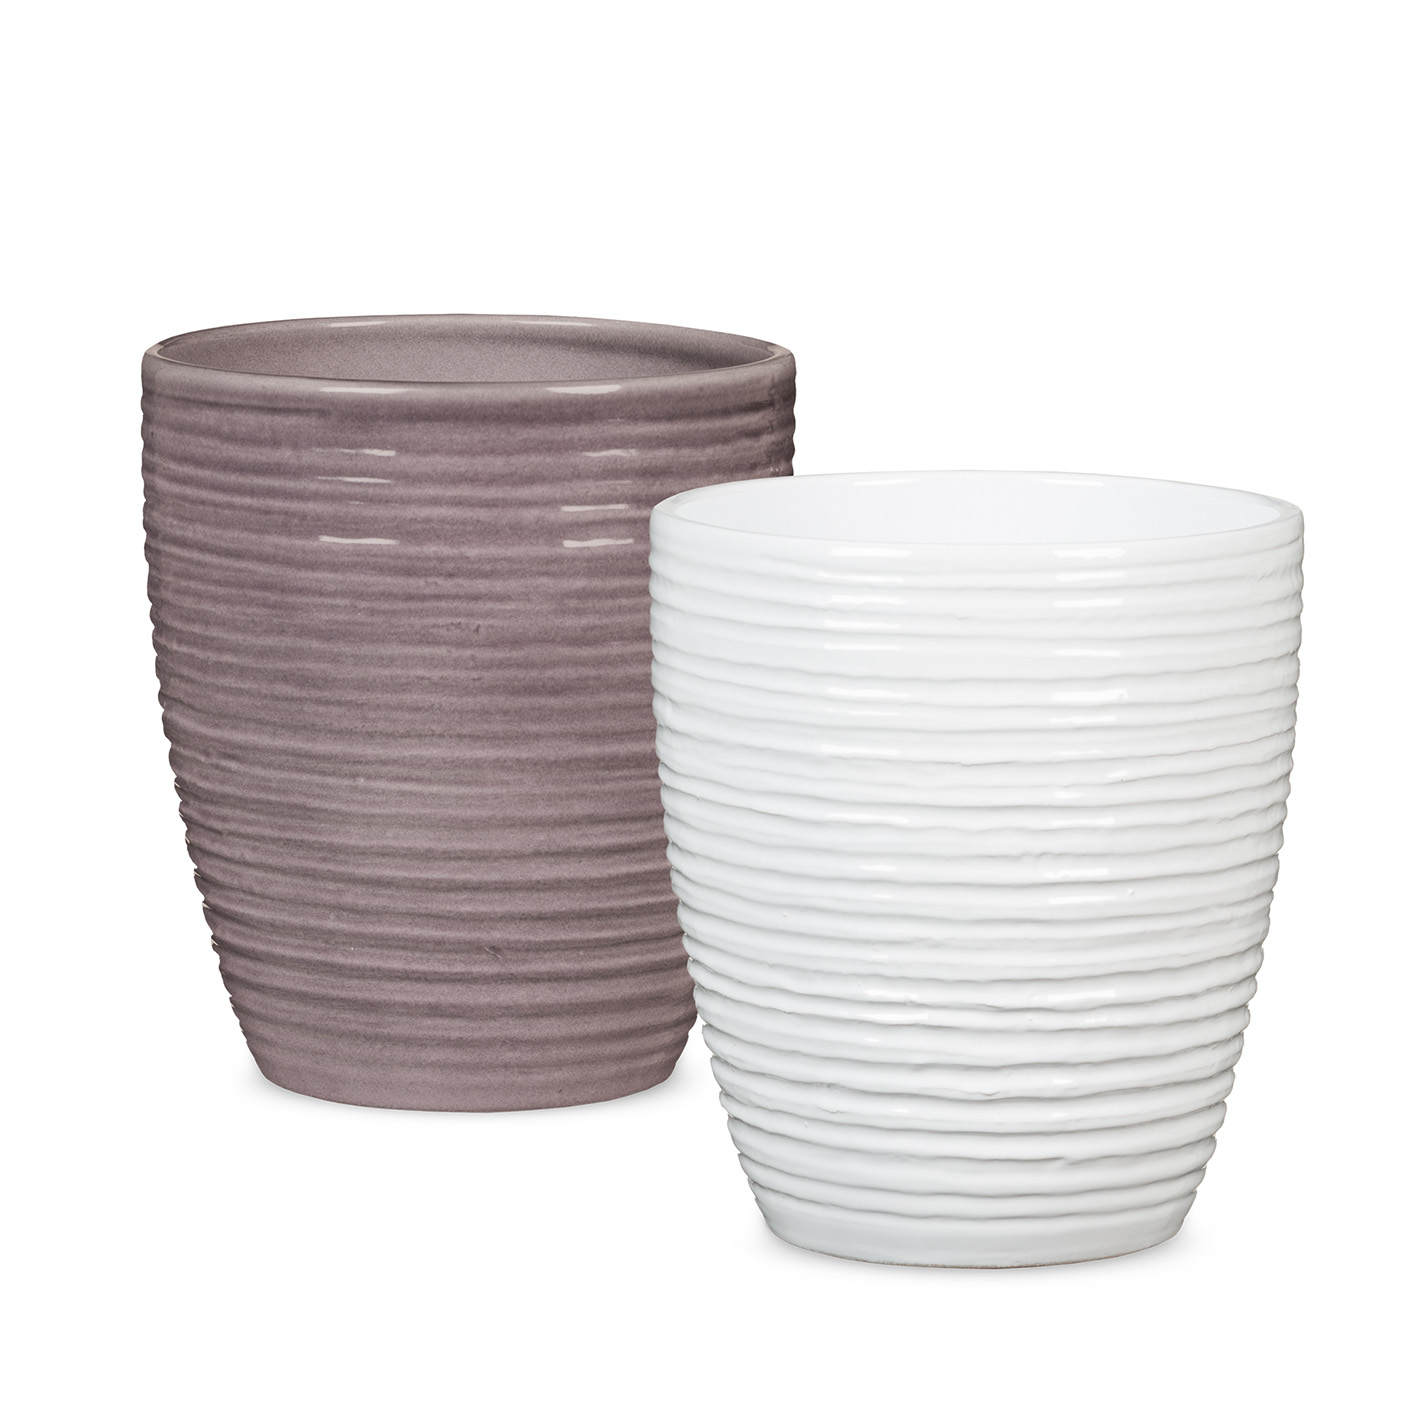 Orchid pot shape 669 Glass Malva and Alaska